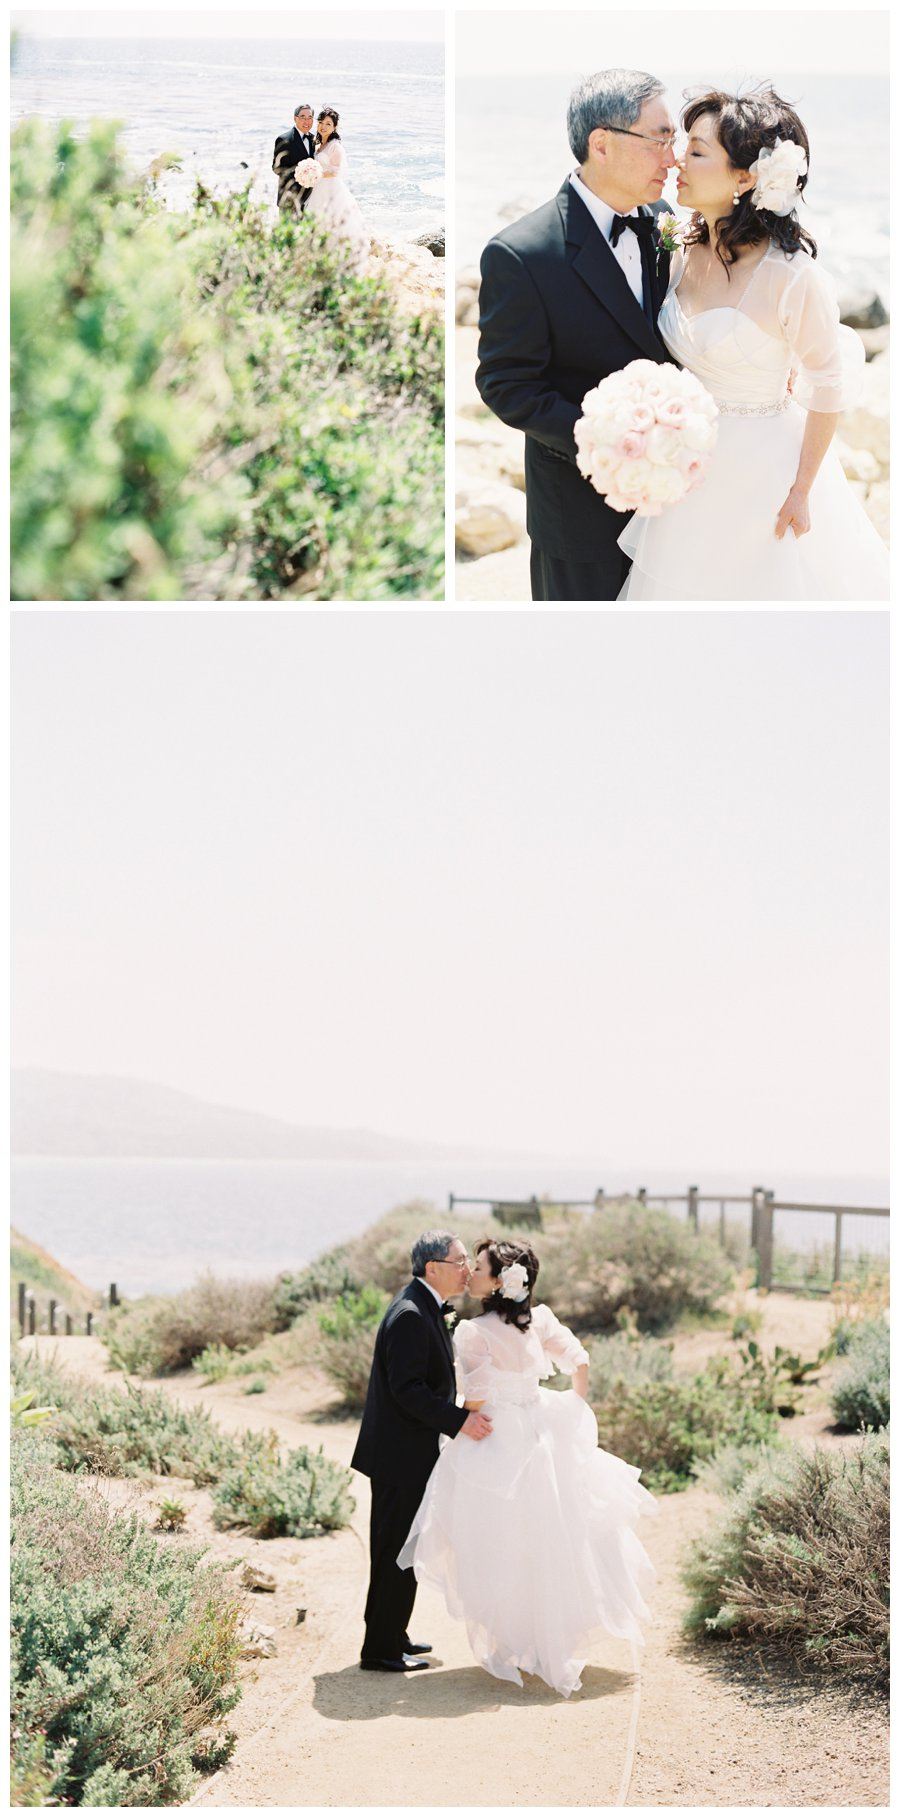 TerraneaWedding_Shinko-Randy_0007.jpg